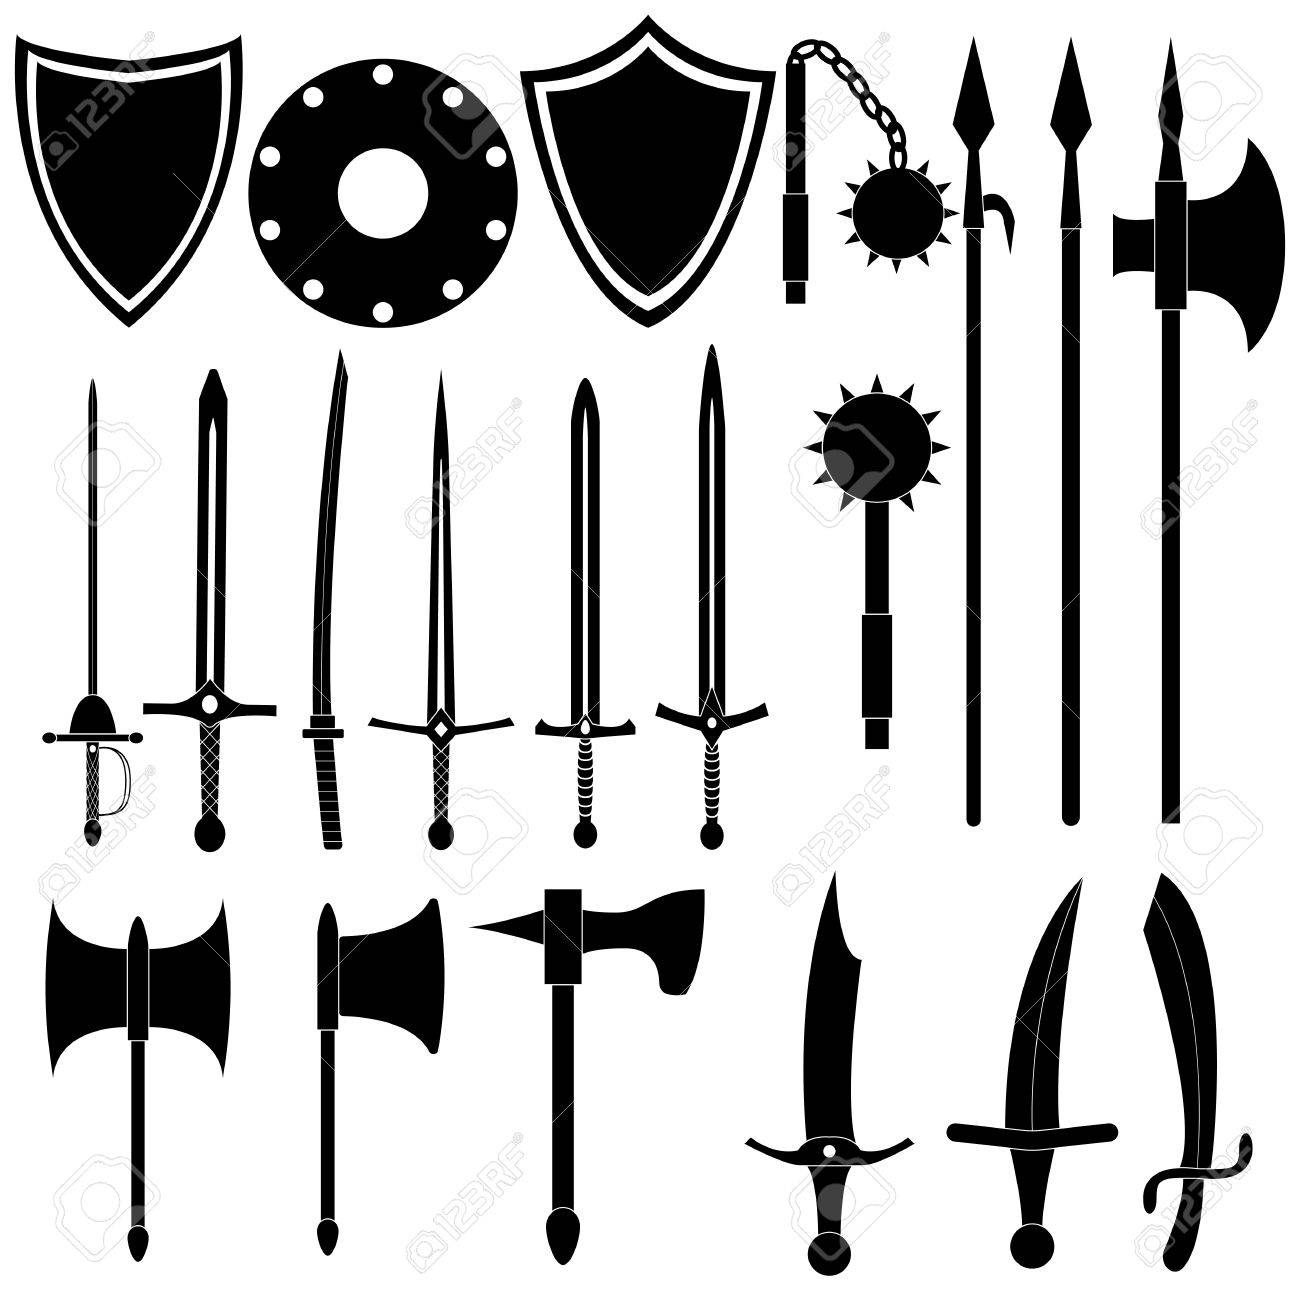 Large collection of medieval weapons  Antique swords, axes, spears